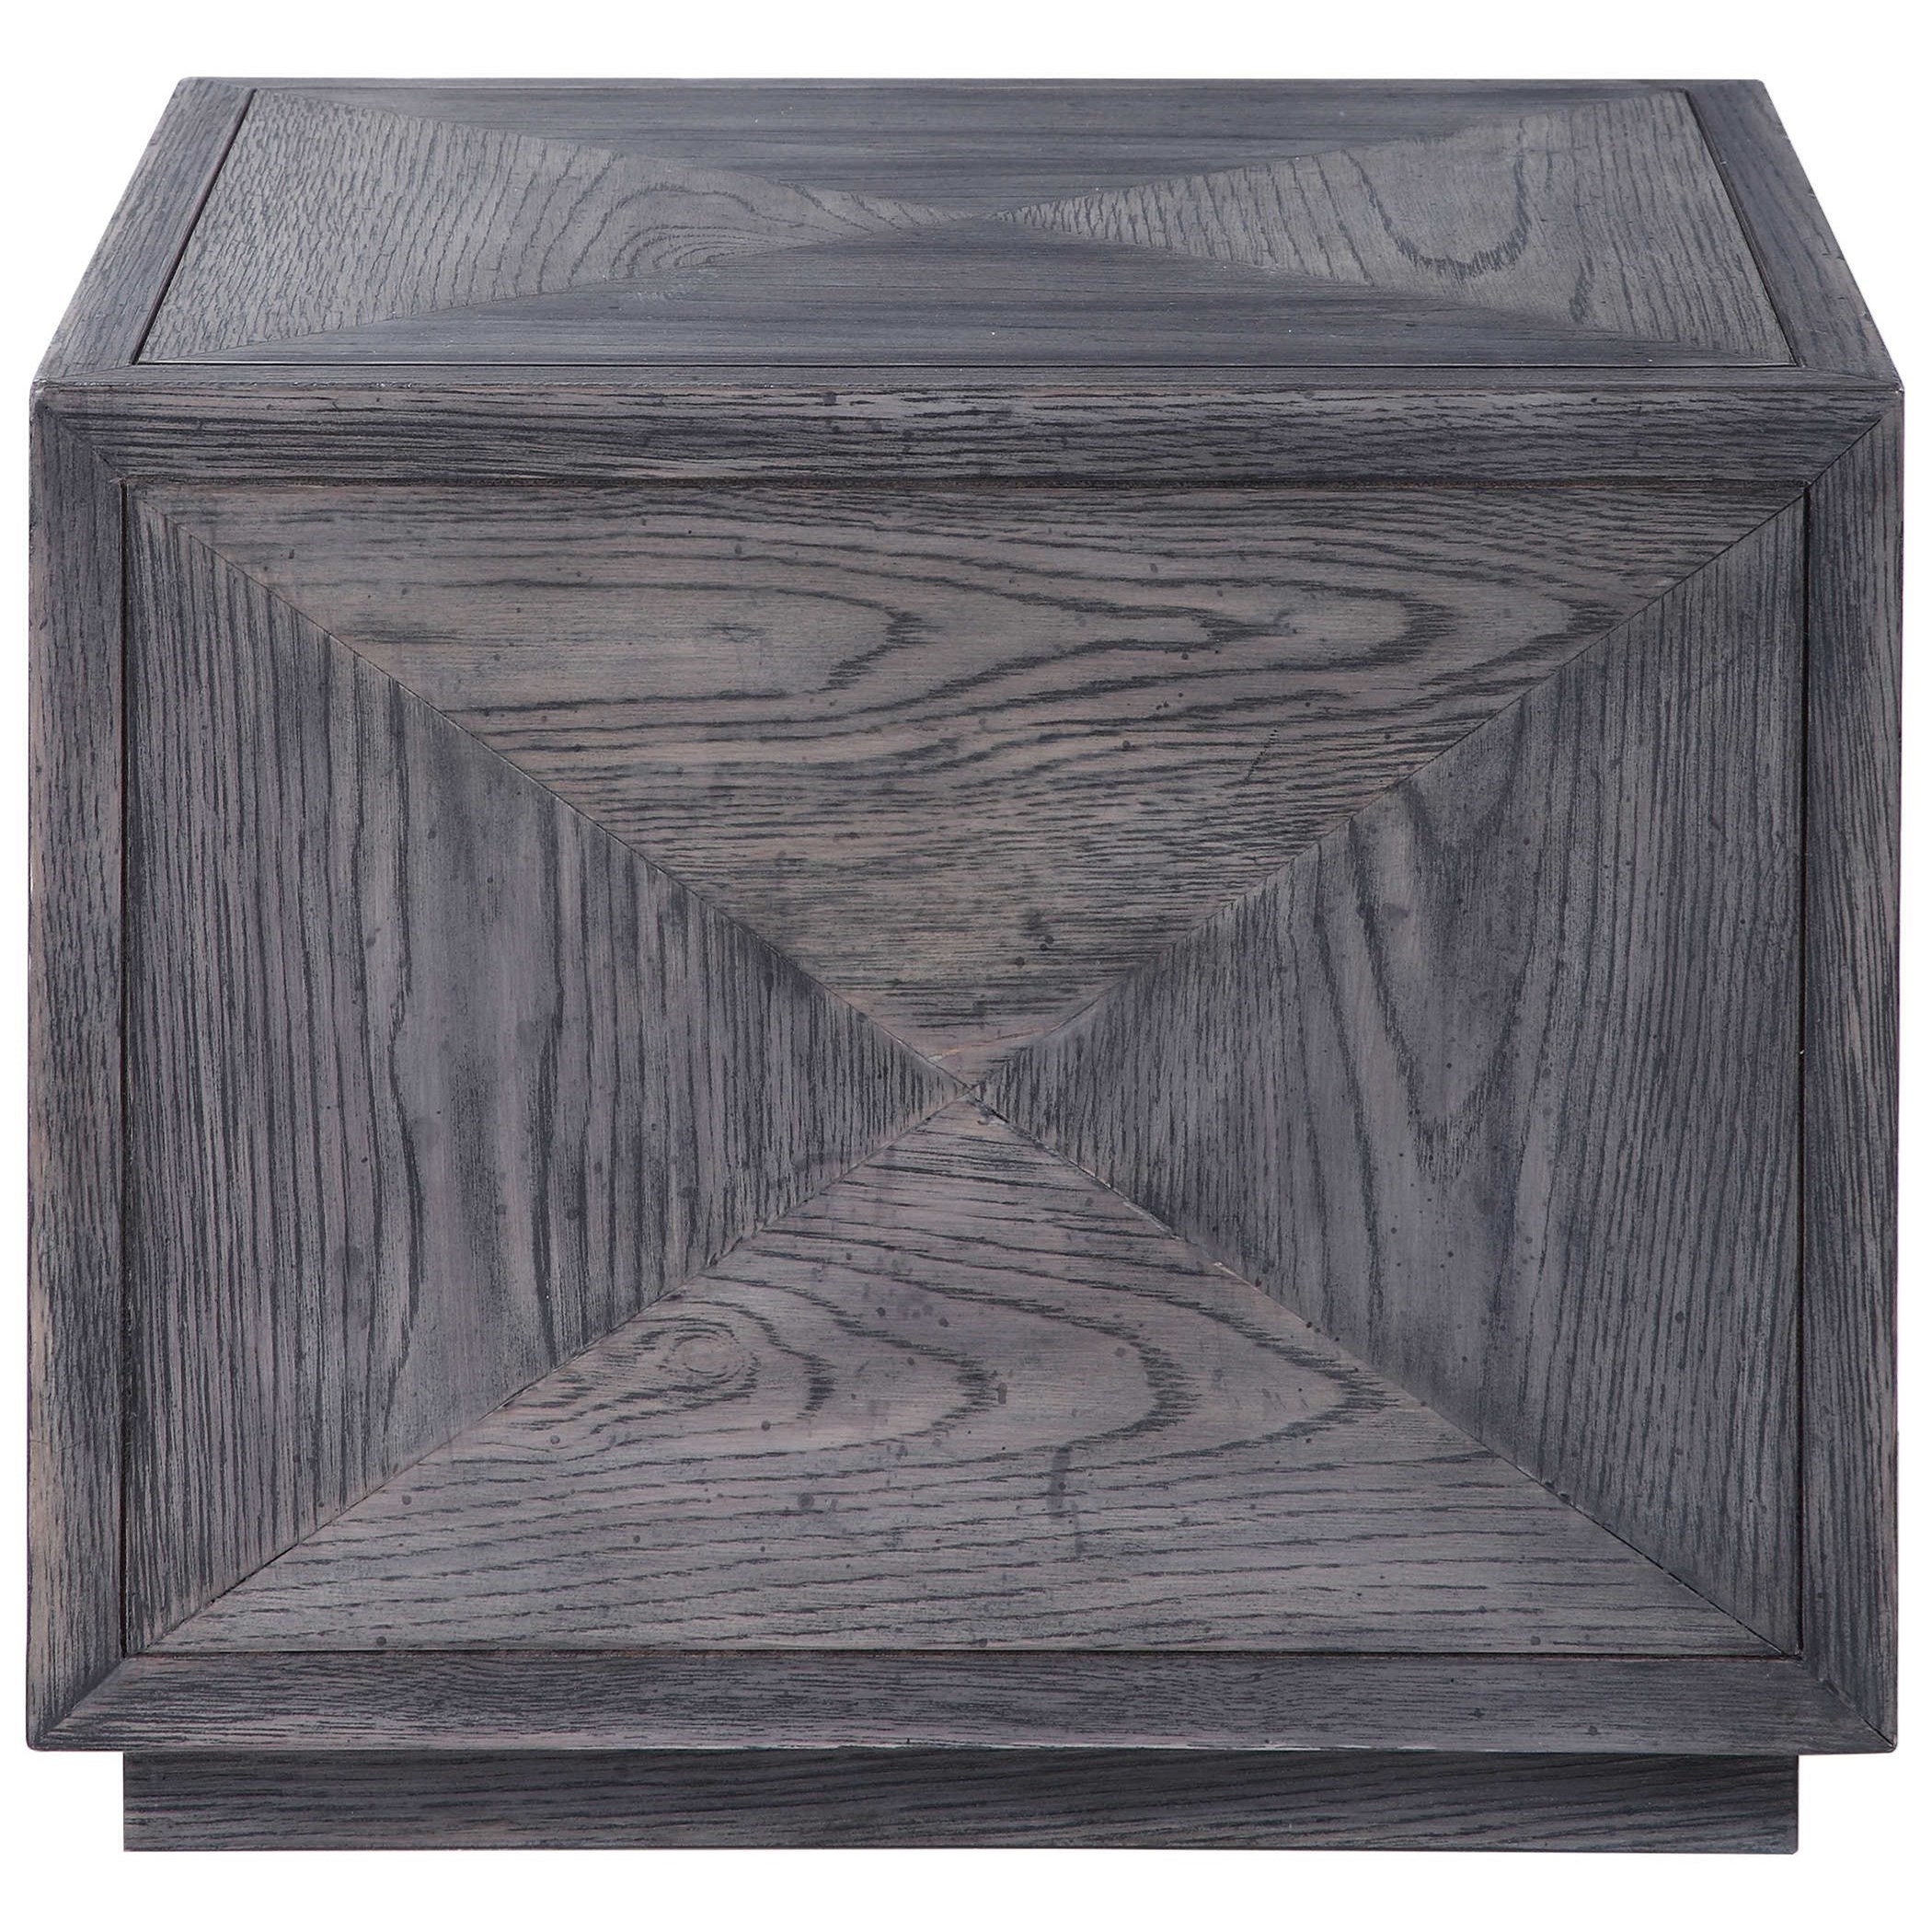 Accent Furniture - Occasional Tables Curtley Wooden Cube Table by Uttermost at O'Dunk & O'Bright Furniture